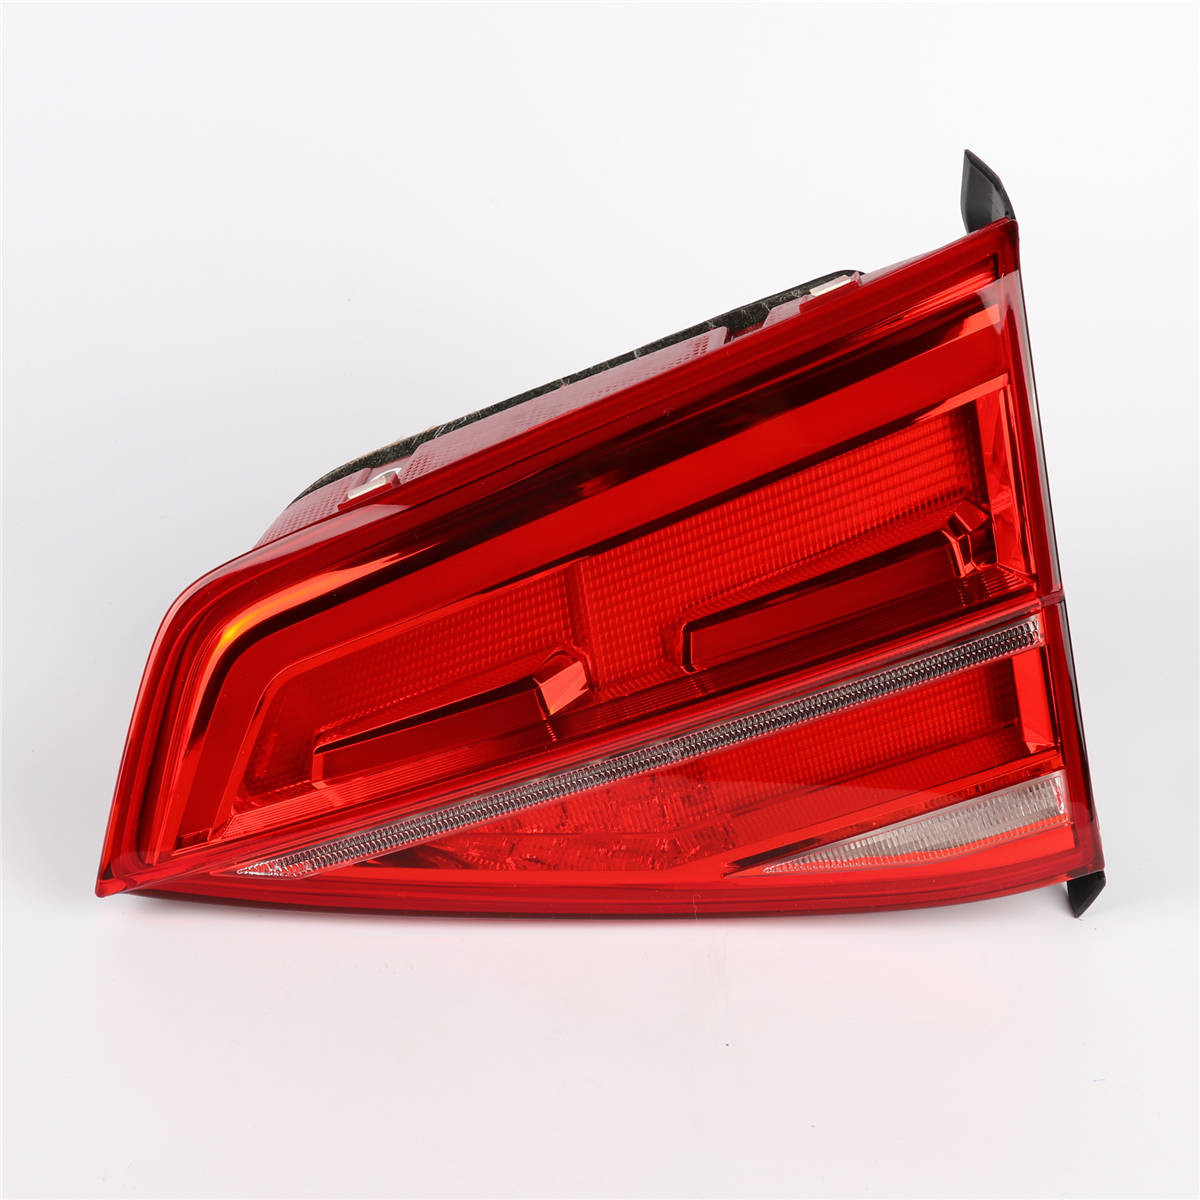 OEM 1Pcs Right Side Red Color LED Light Tail Lights Rear Lamp Housing For VW Volkswagen Jetta GLI MK6 2015-2019 16D 945 308 1pcs 6ru 945 096 rh tail light taillamp rear light assembly right side for volkswagen polo sedan vento 2010 2014